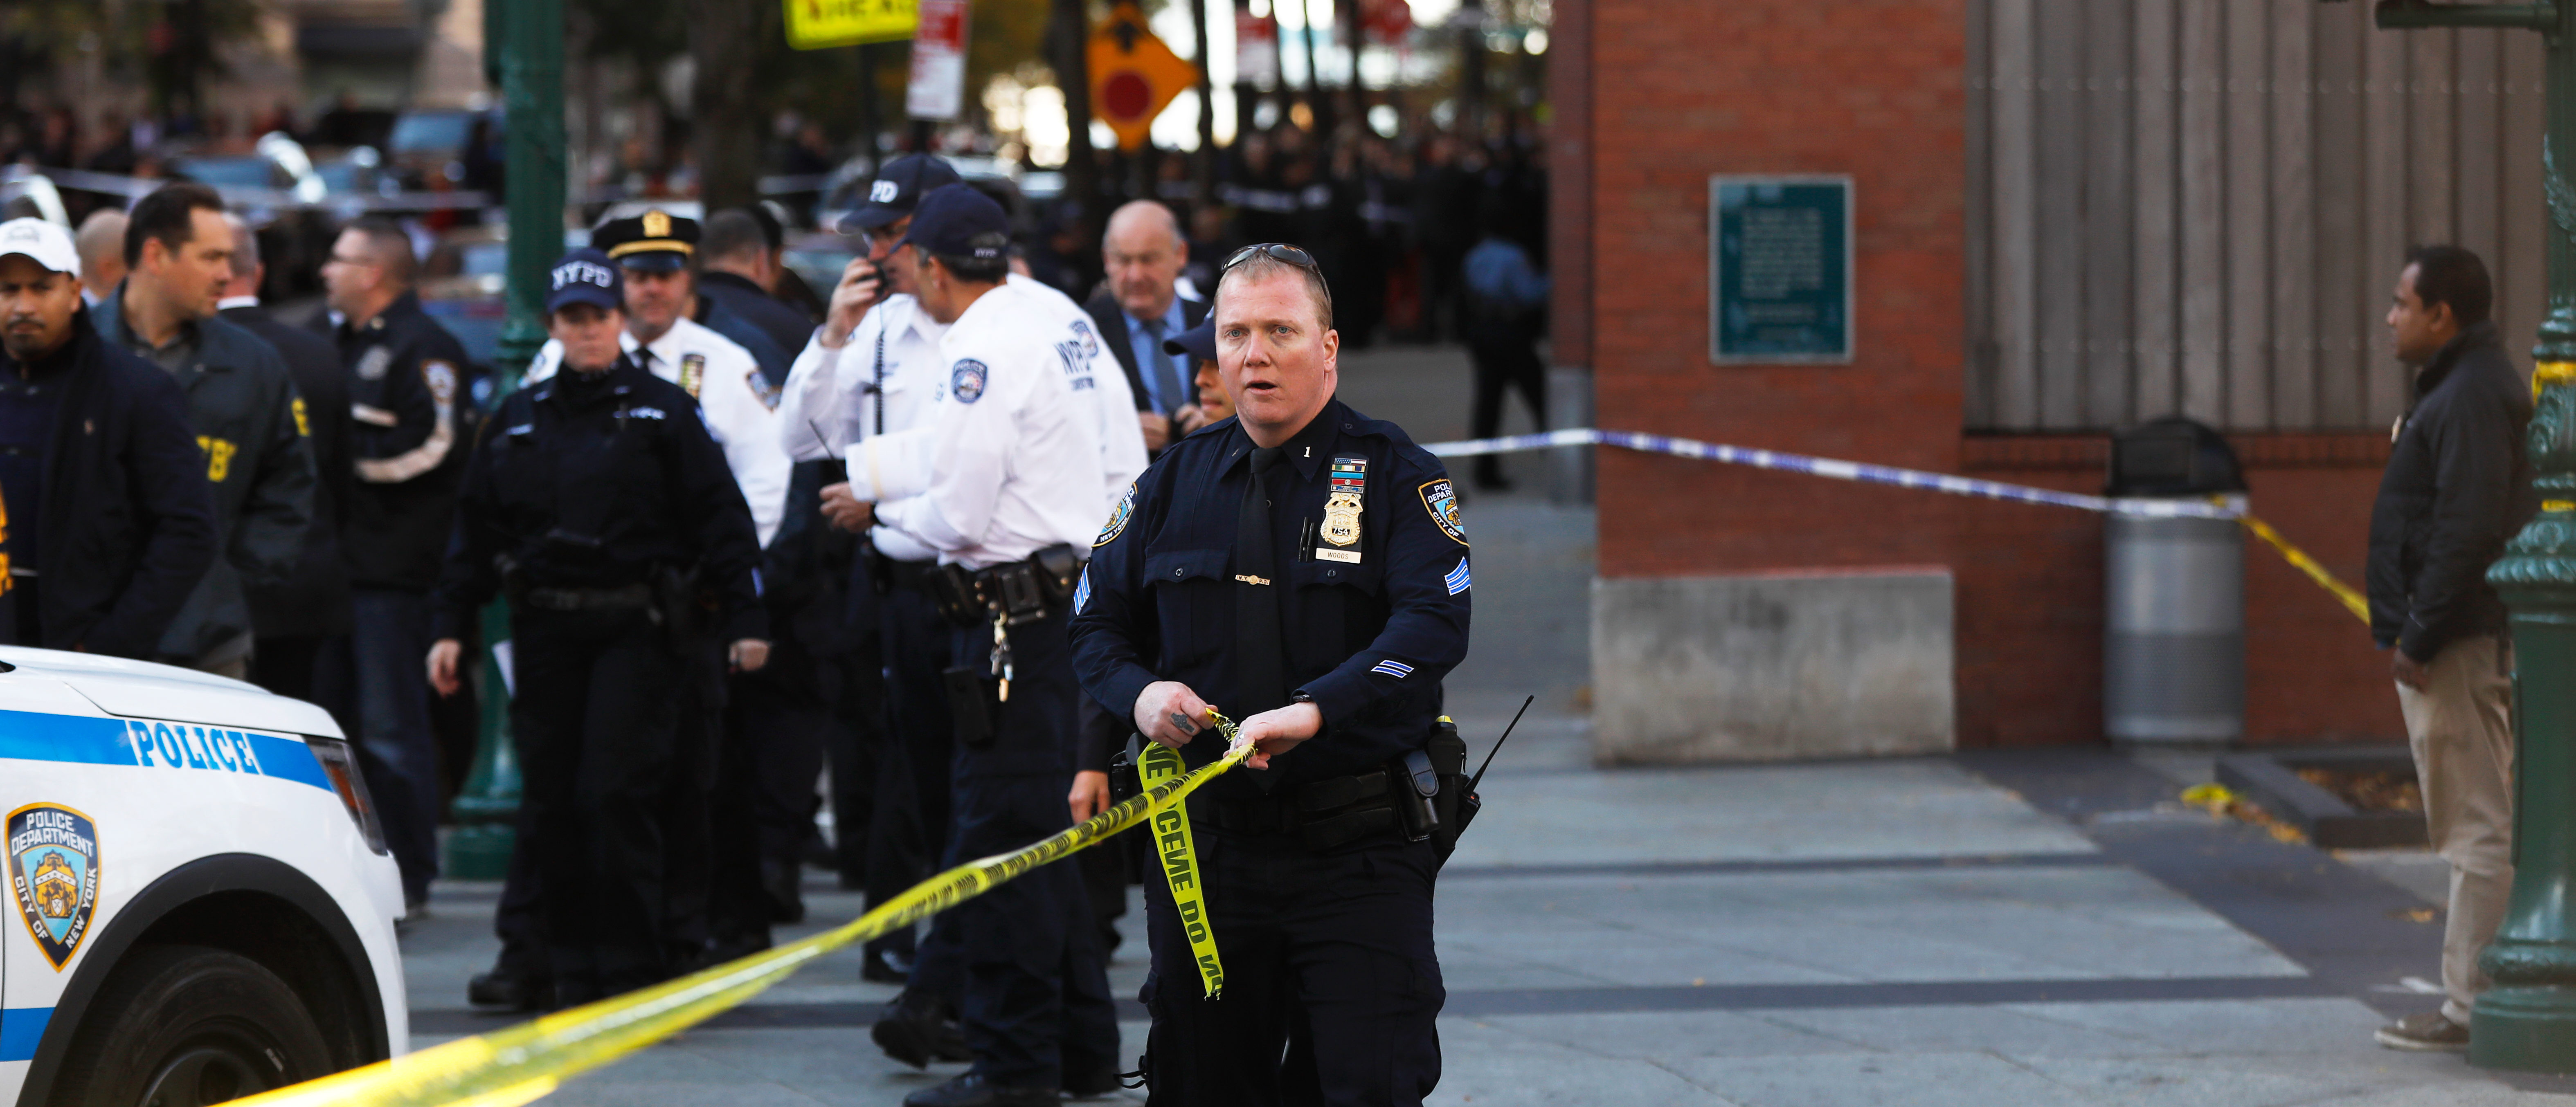 Police block off the street after a shooting incident in New York City, U.S. October 31, 2017. REUTERS/Shannon Stapleton - HP1EDAV1LQI18